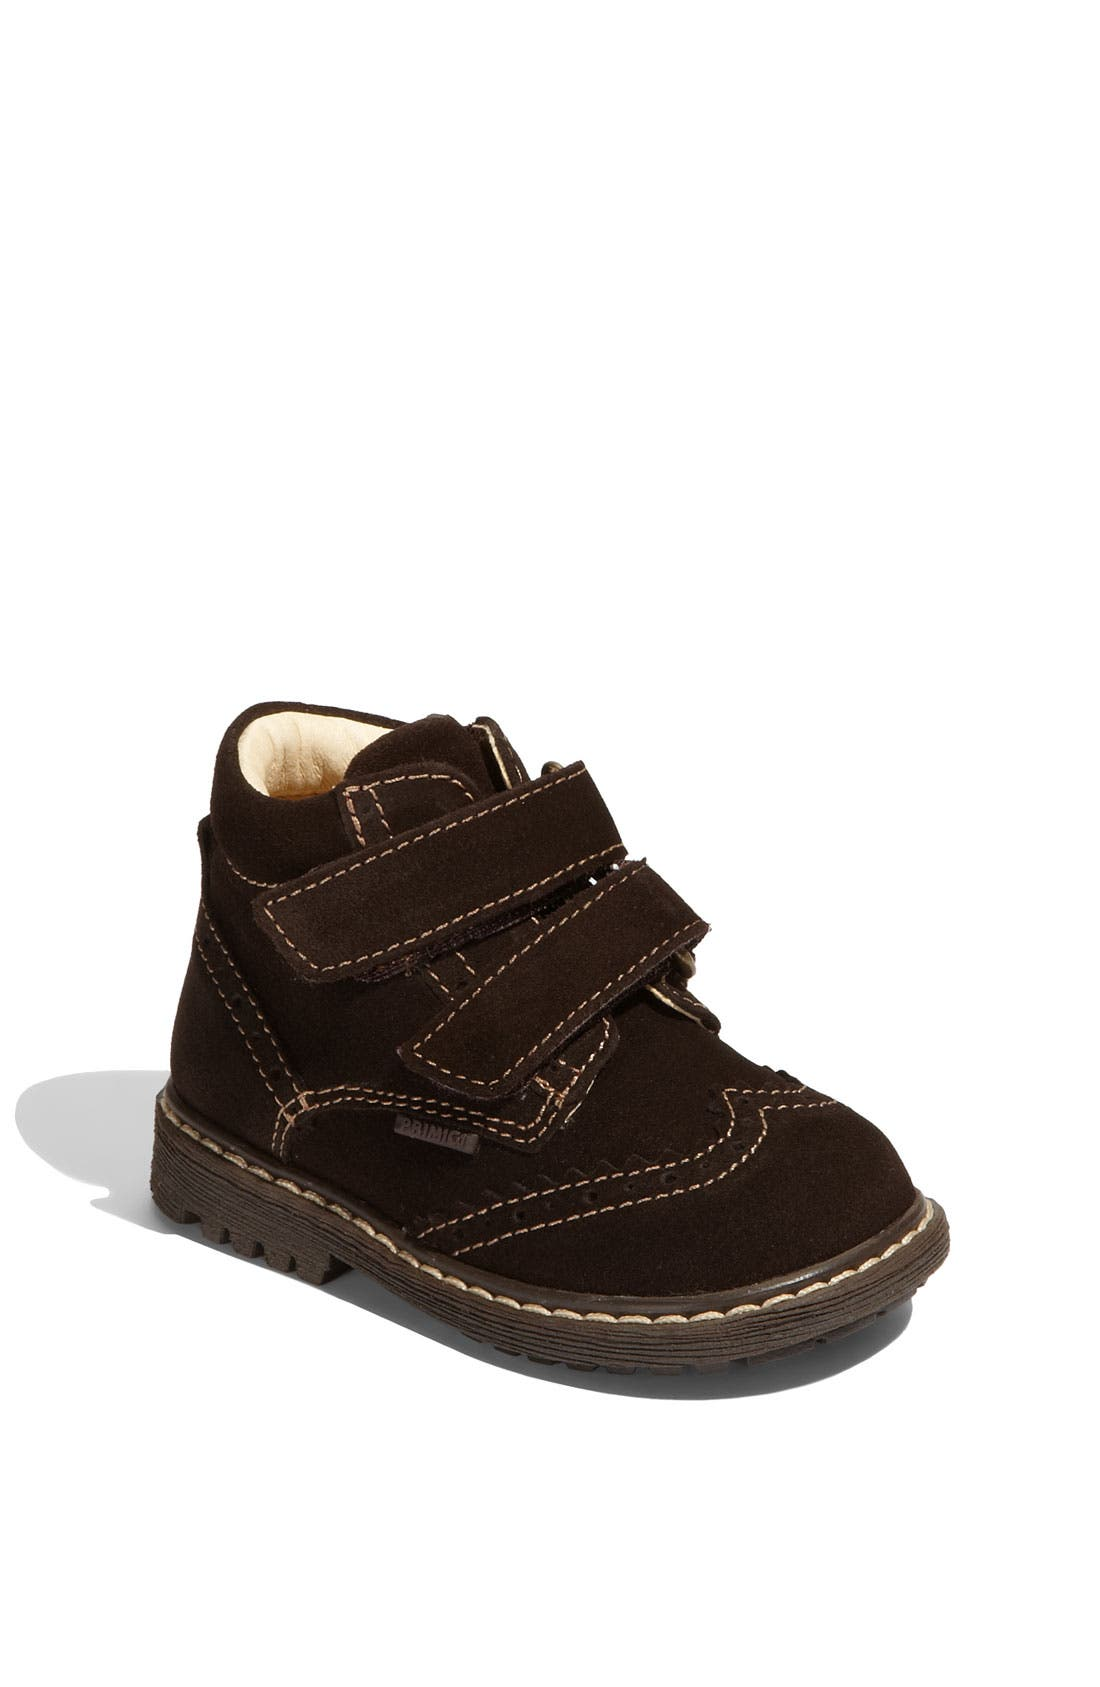 Main Image - Primigi 'Romuald' Boot (Walker & Toddler)